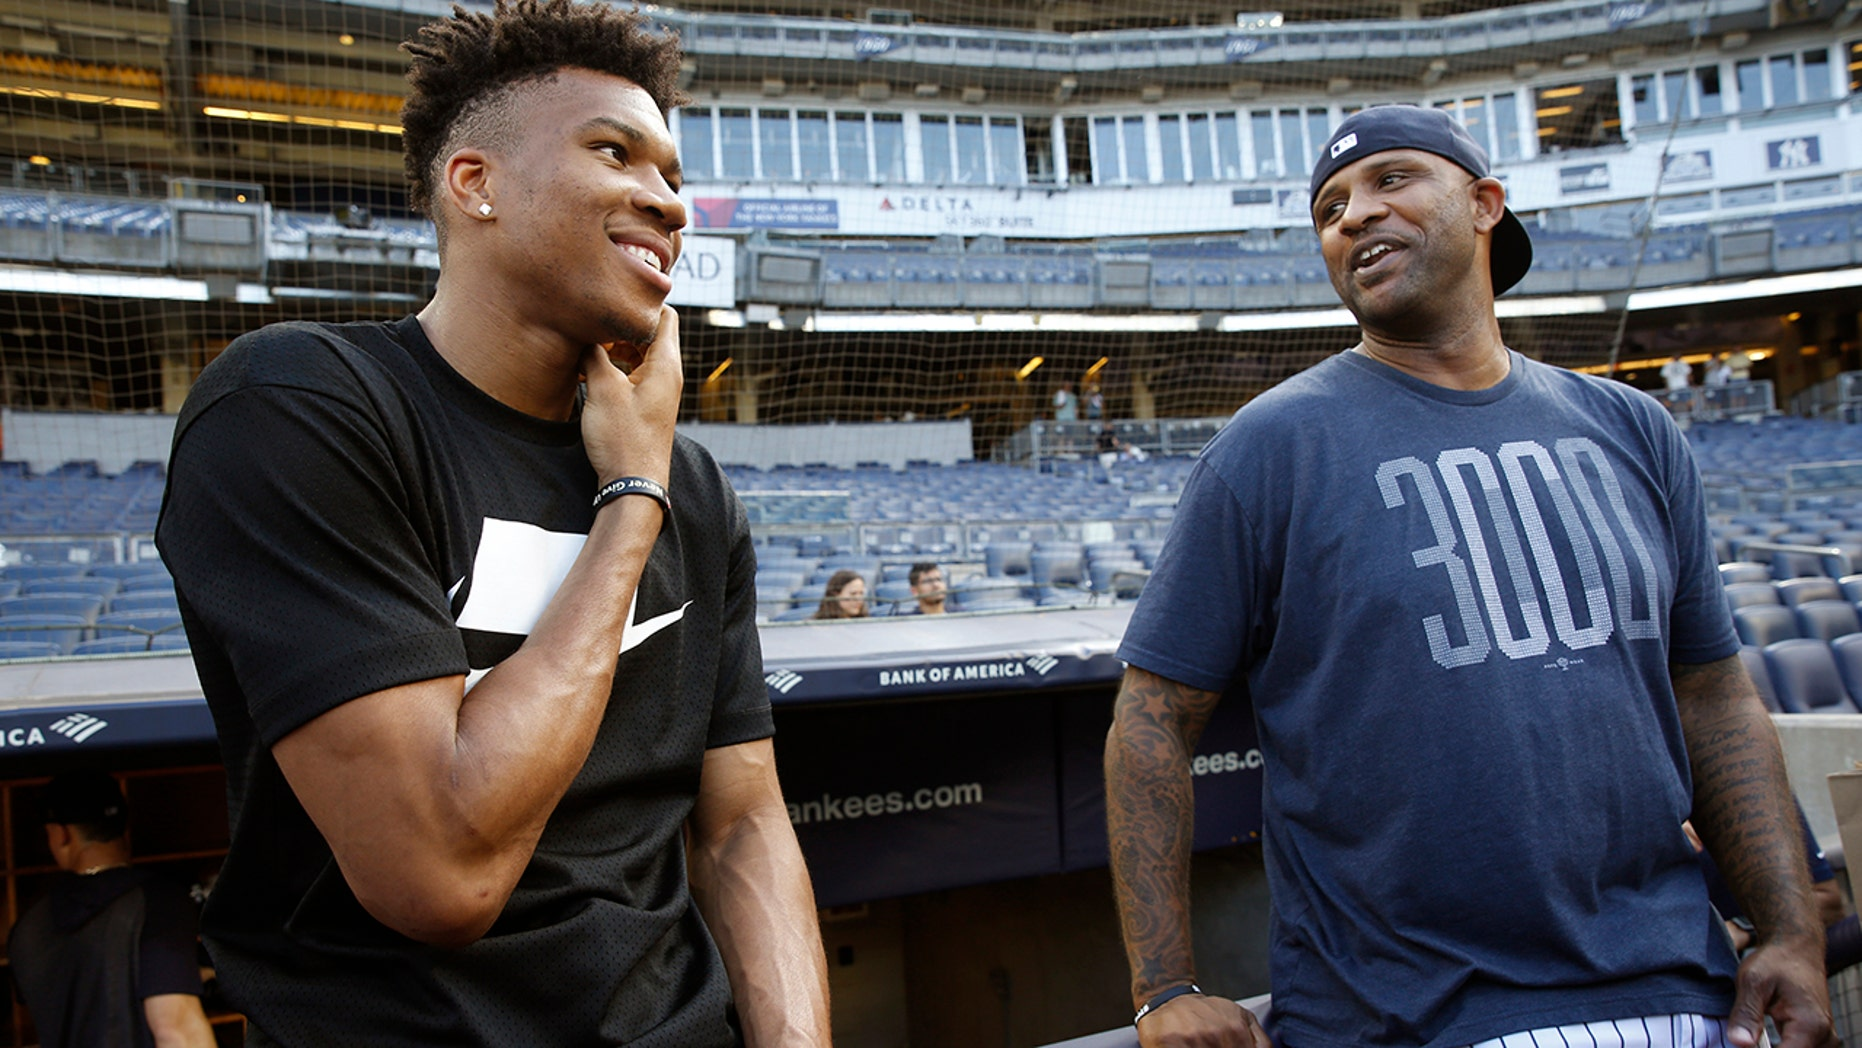 Milwaukee Bucks forward and 2019 NBA Most Valuable Player Giannis Antetokounmpo, left, talks to New York Yankees starting pitcher CC Sabathia before a baseball game between the Yankees and the Tampa Bay Rays, Monday, July 15, 2019, in New York. (AP Photo/Kathy Willens)